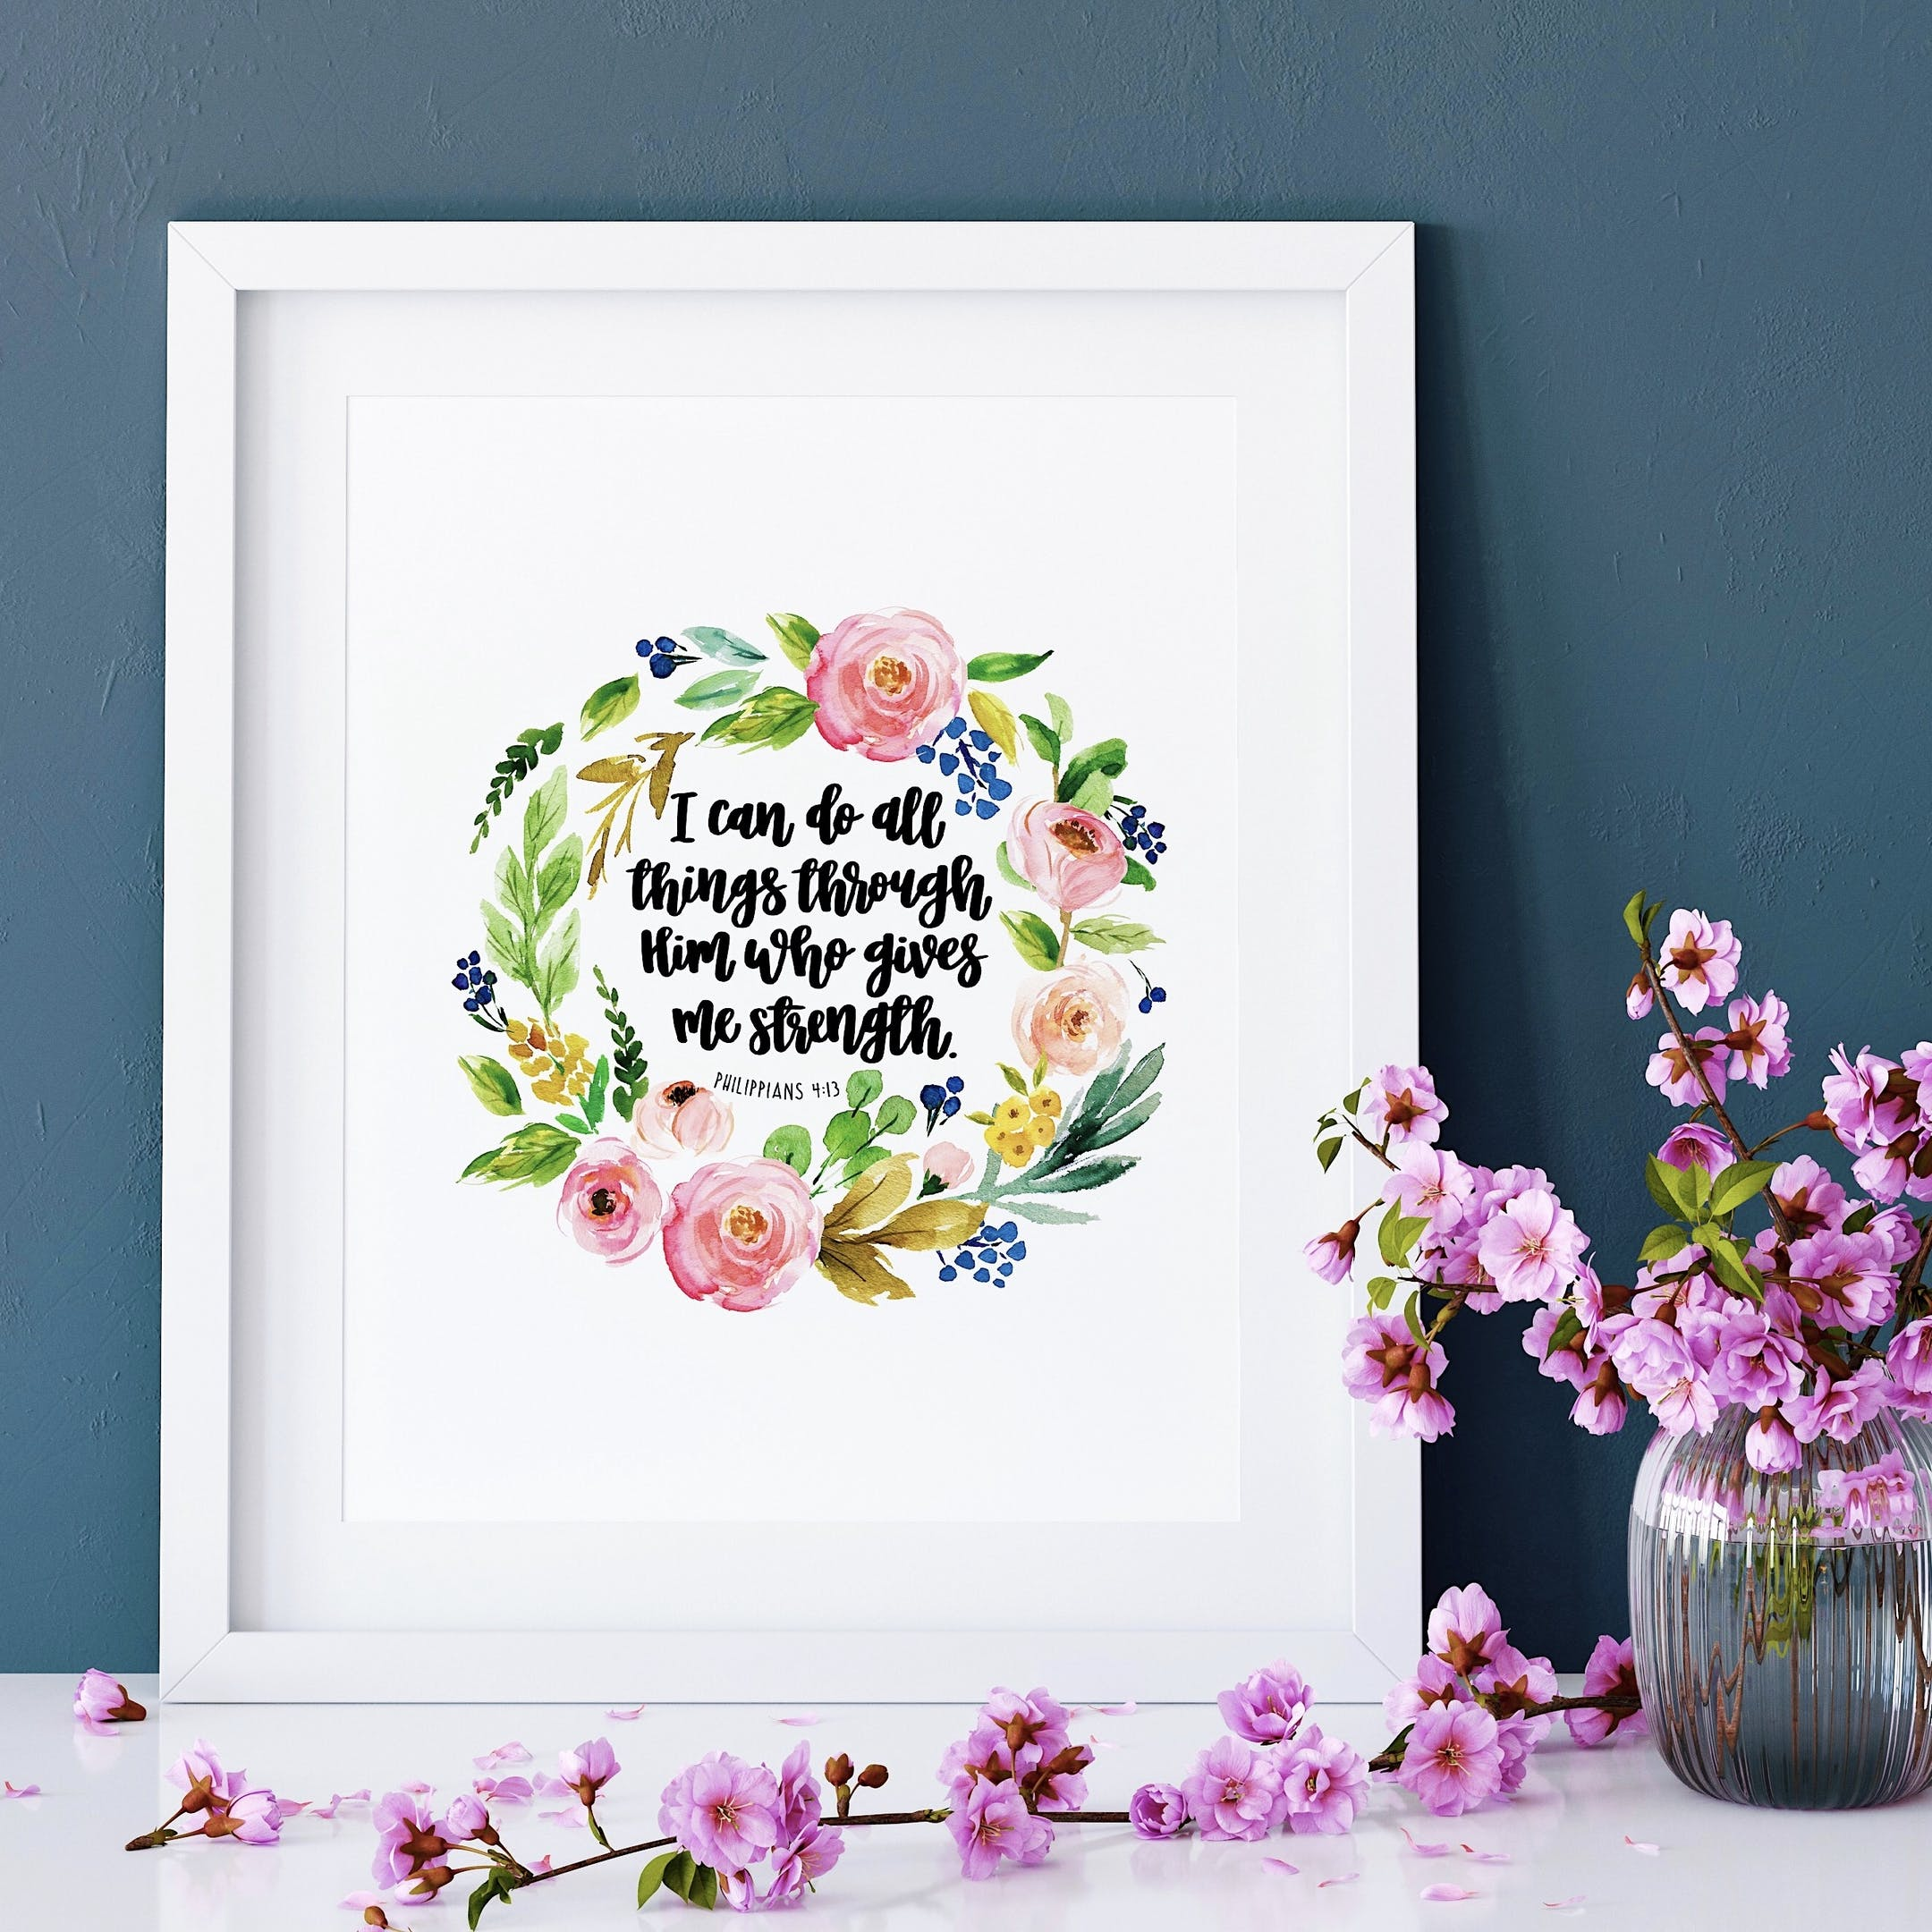 I Can Do All Things Through Him Who Gives Me Strength Floral Print - Philippians 4:13 - Izzy and Pop